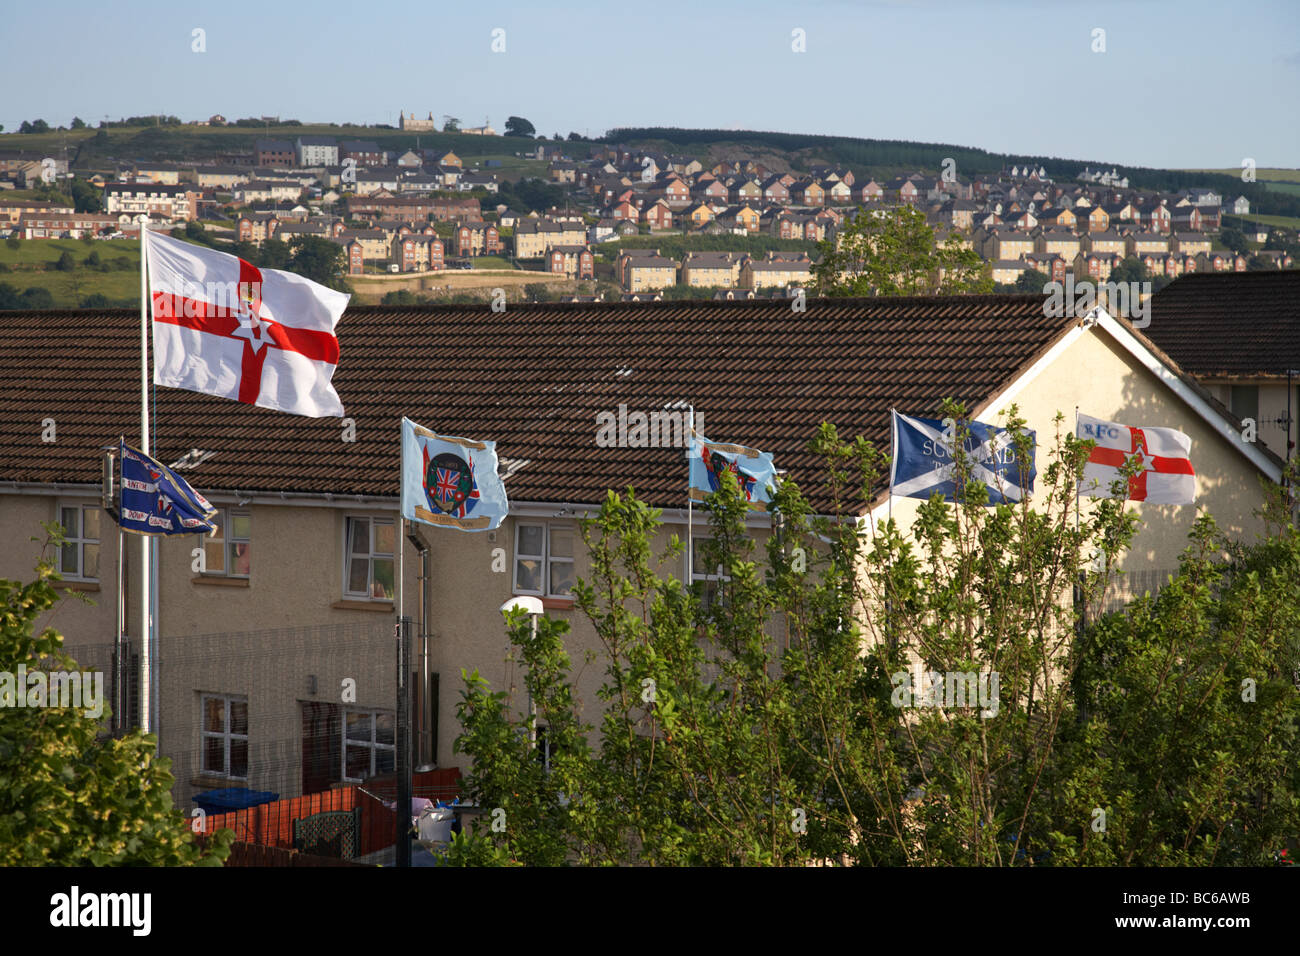 the fountain estate flying loyalist flags in derry city county derry northern ireland uk - Stock Image